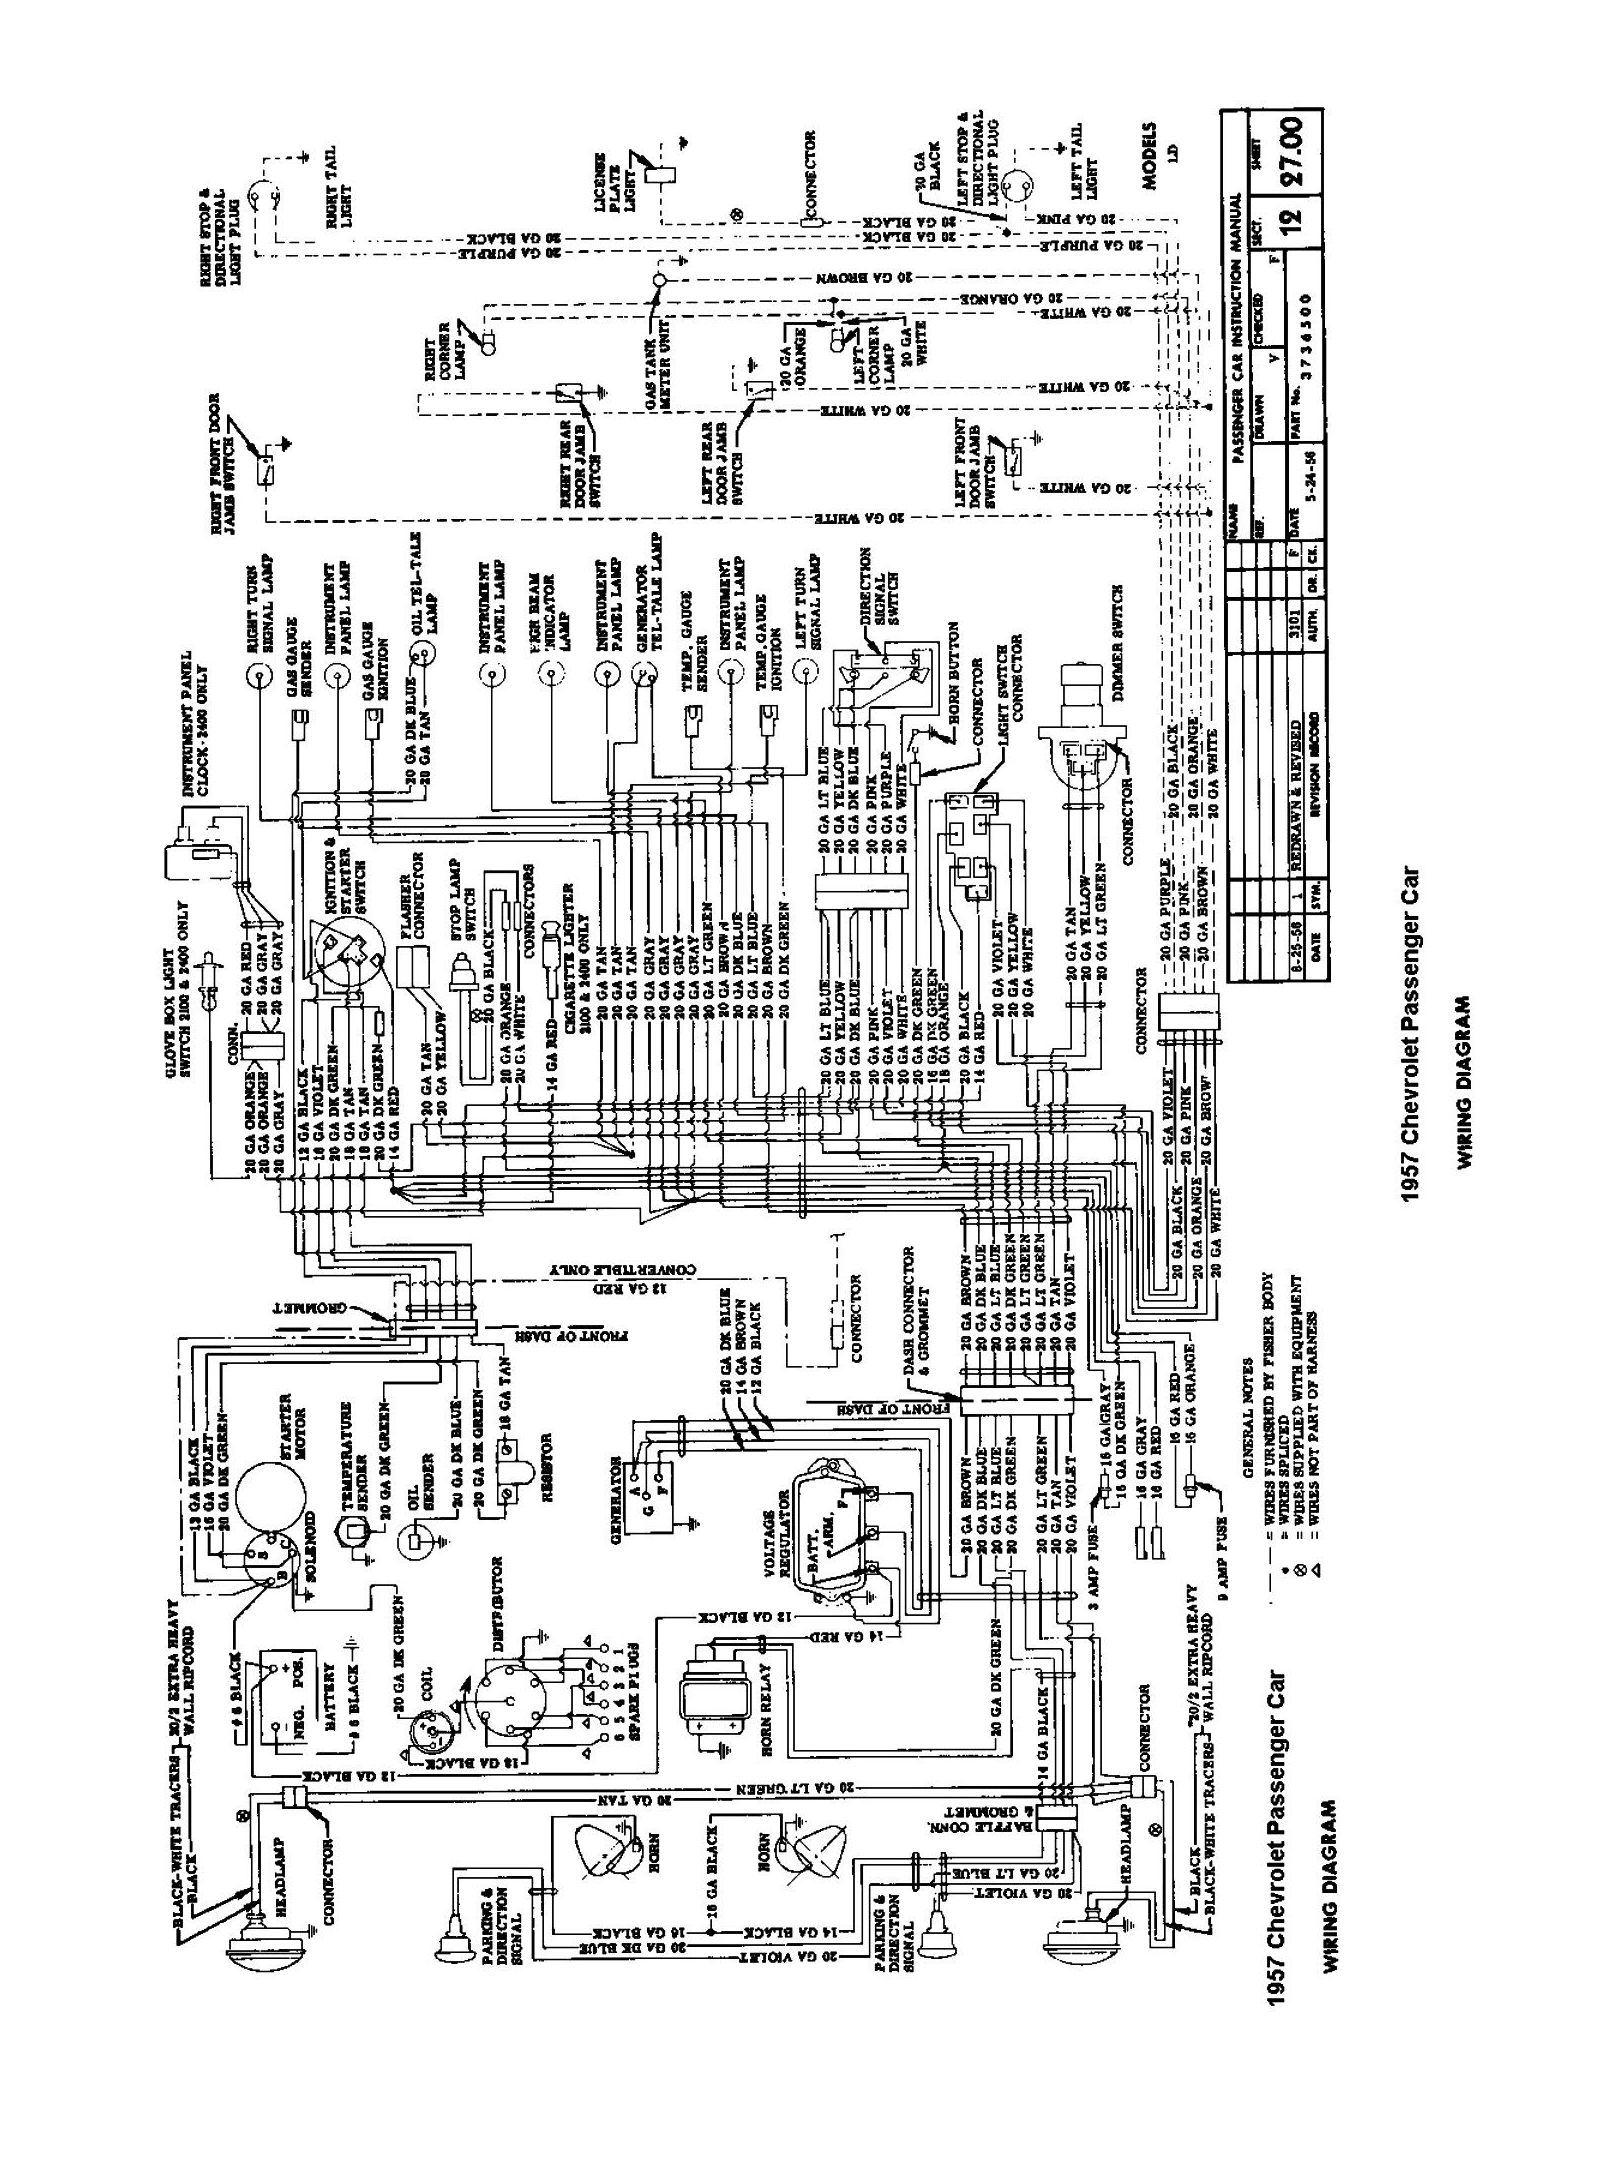 57 chevy wiring diagram 57 chevys diagram, 1957 57 chevy dash wiring wiring diagram